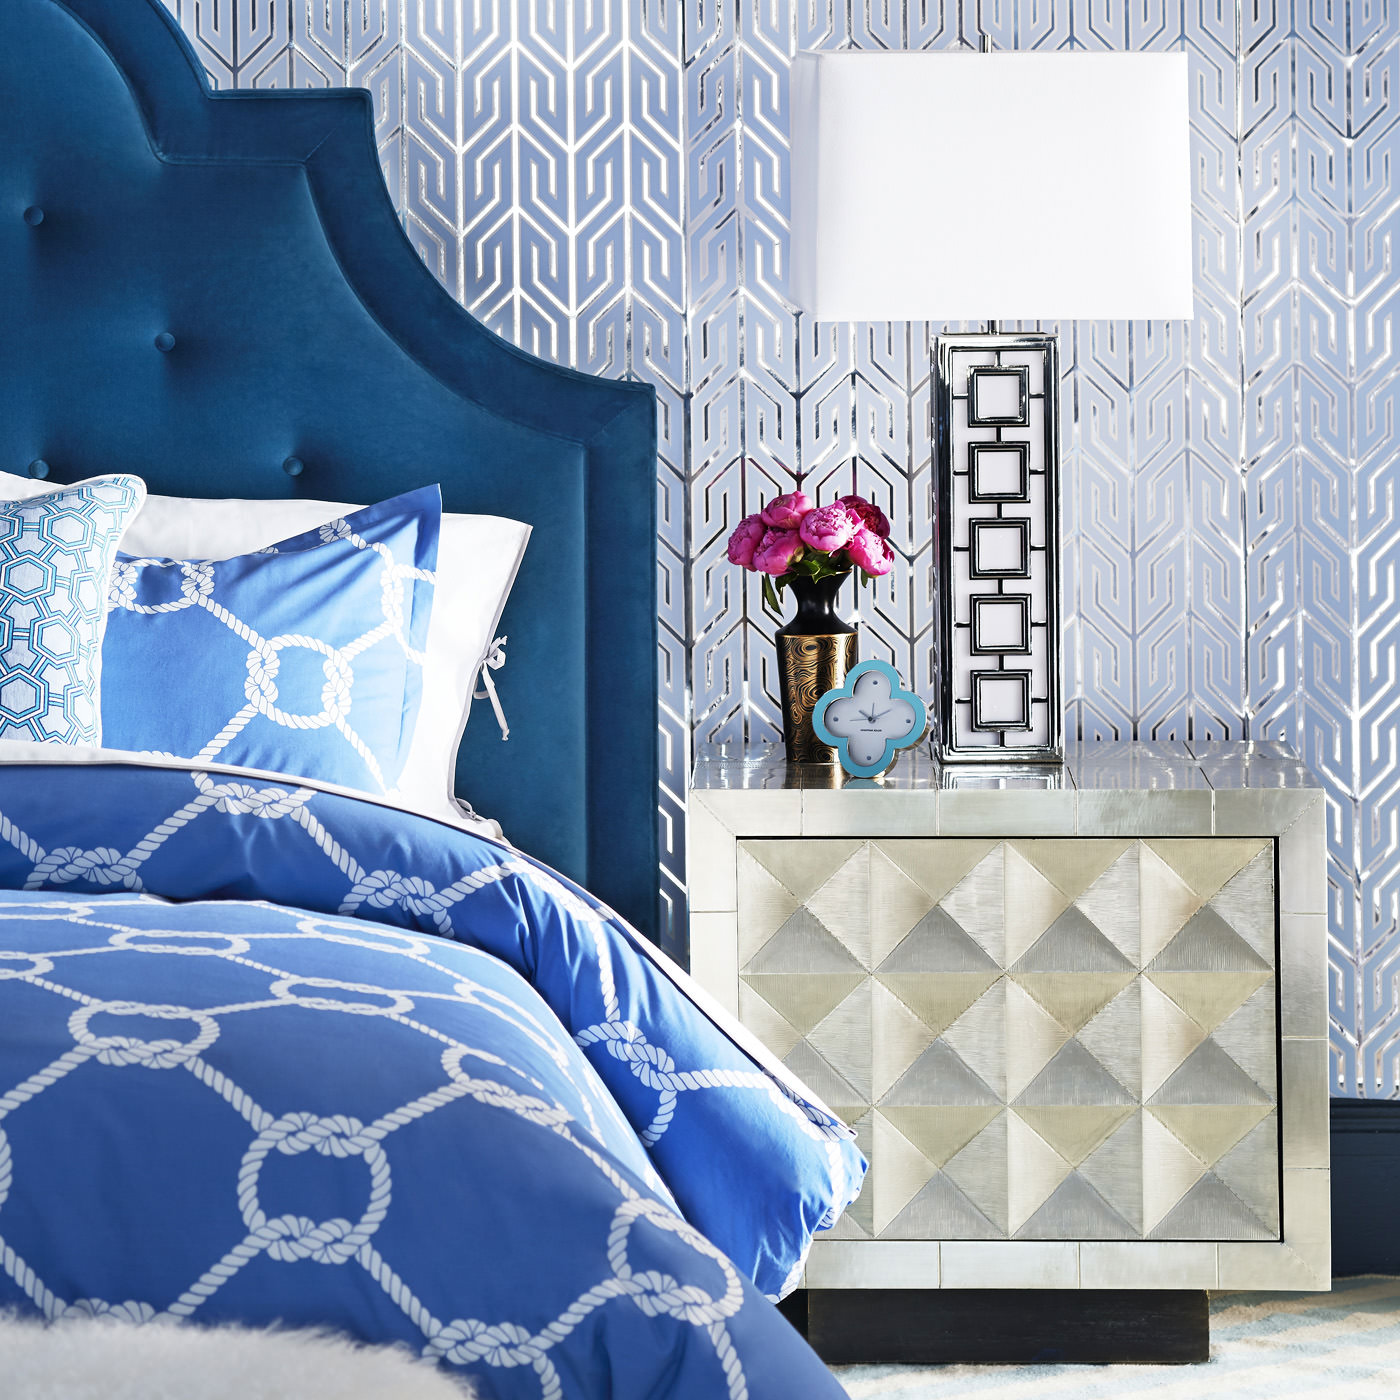 Master Bedroom Design master bedroom design Master Bedroom Design Tips From Top Designers Master Bedroom Design Tips From Top Designers 11